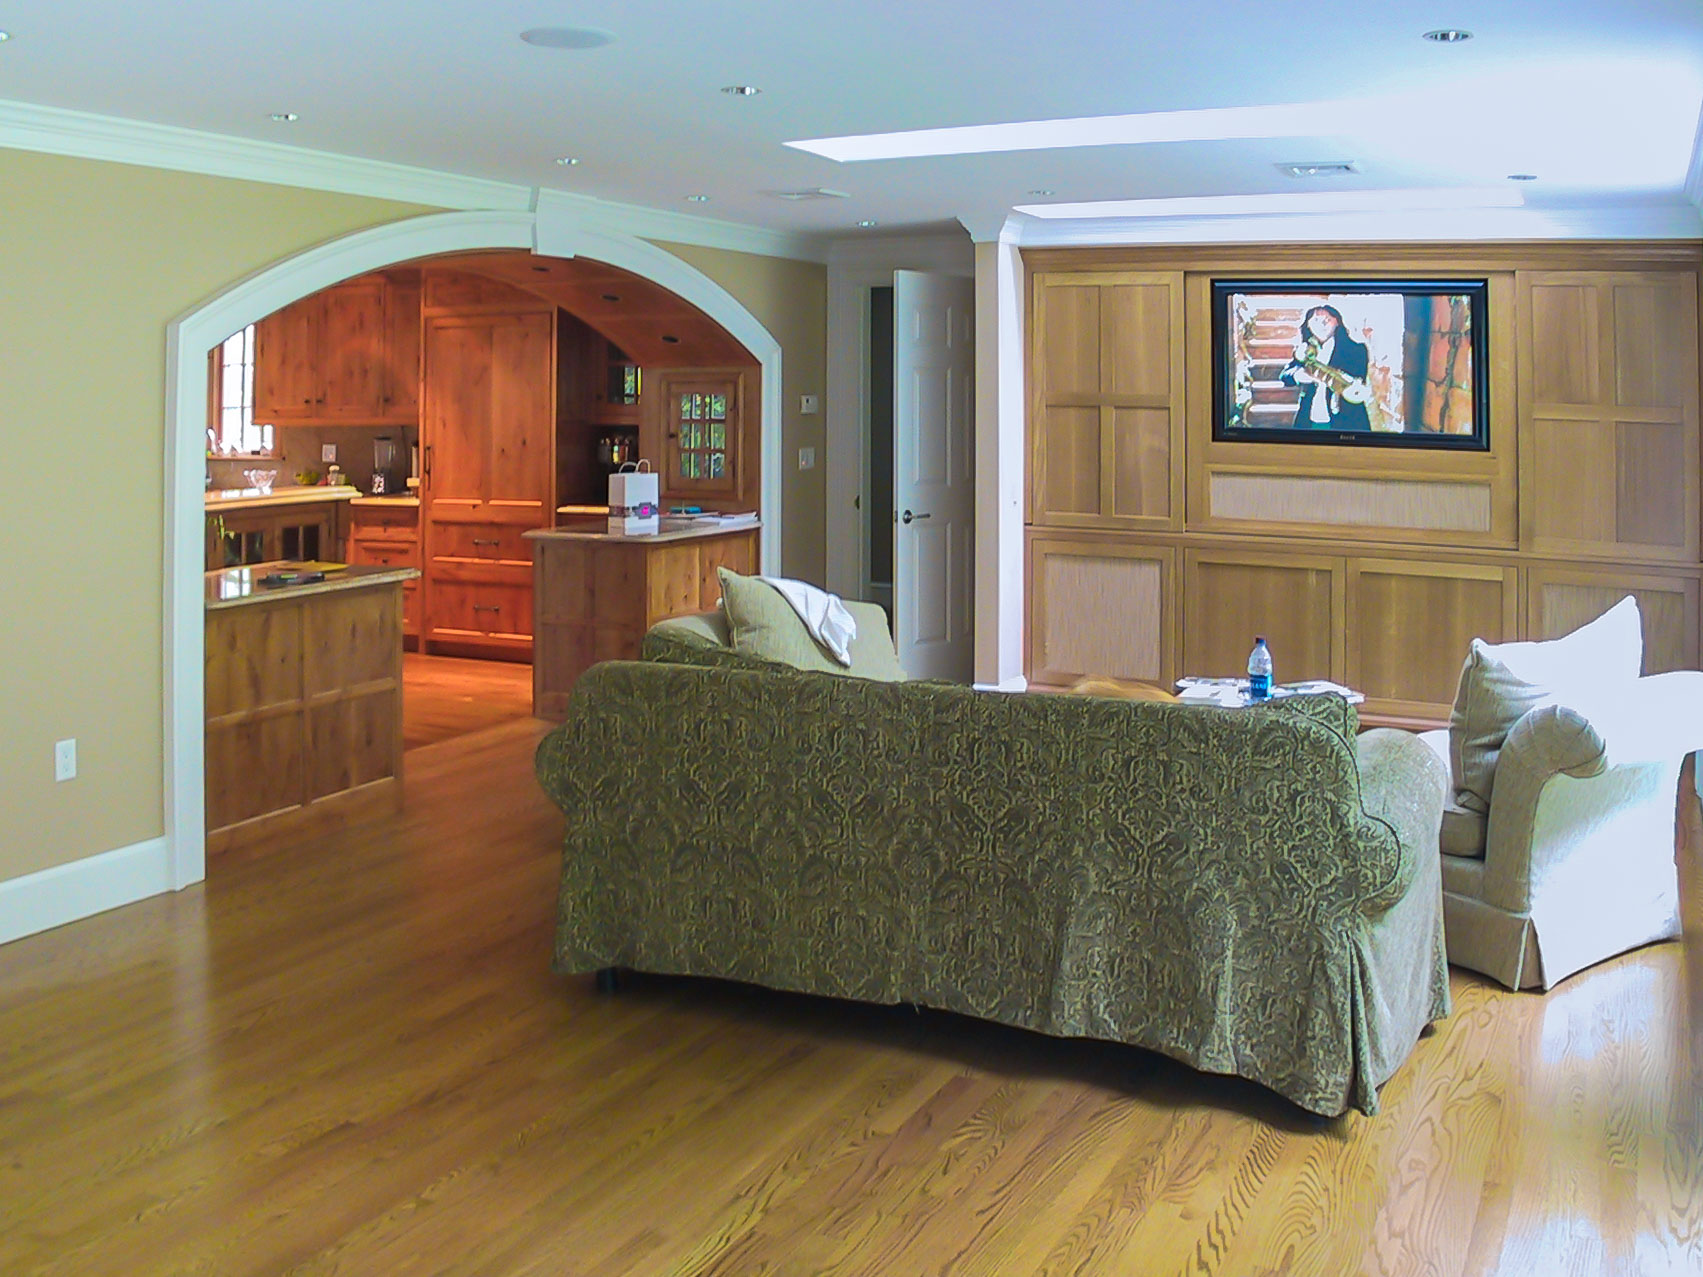 Kitchen and Family Room trade places